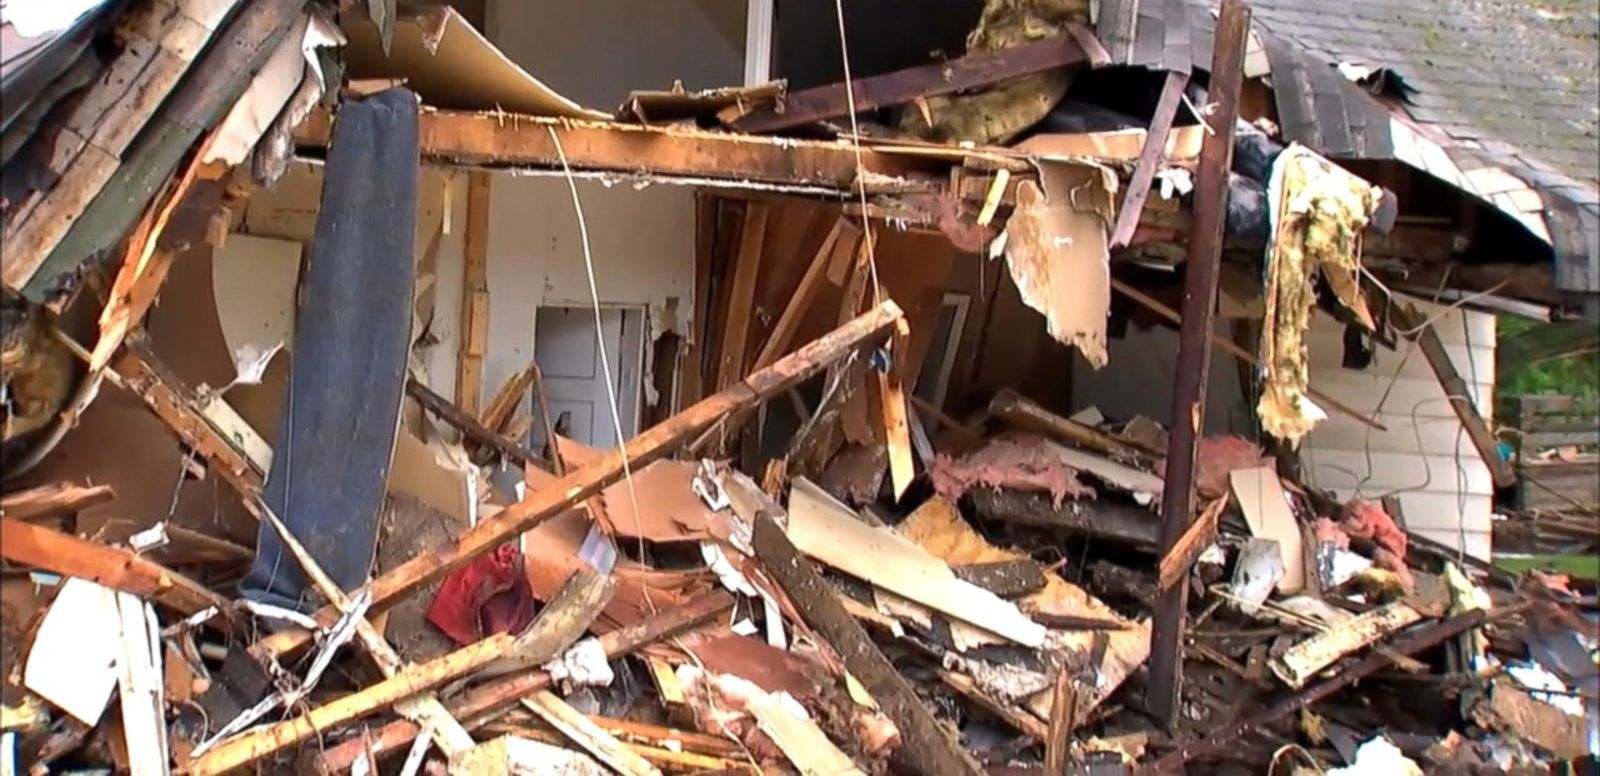 Communities across the country are picking up the pieces after severe weather destroyed thousands of homes and killed nearly two dozen people.